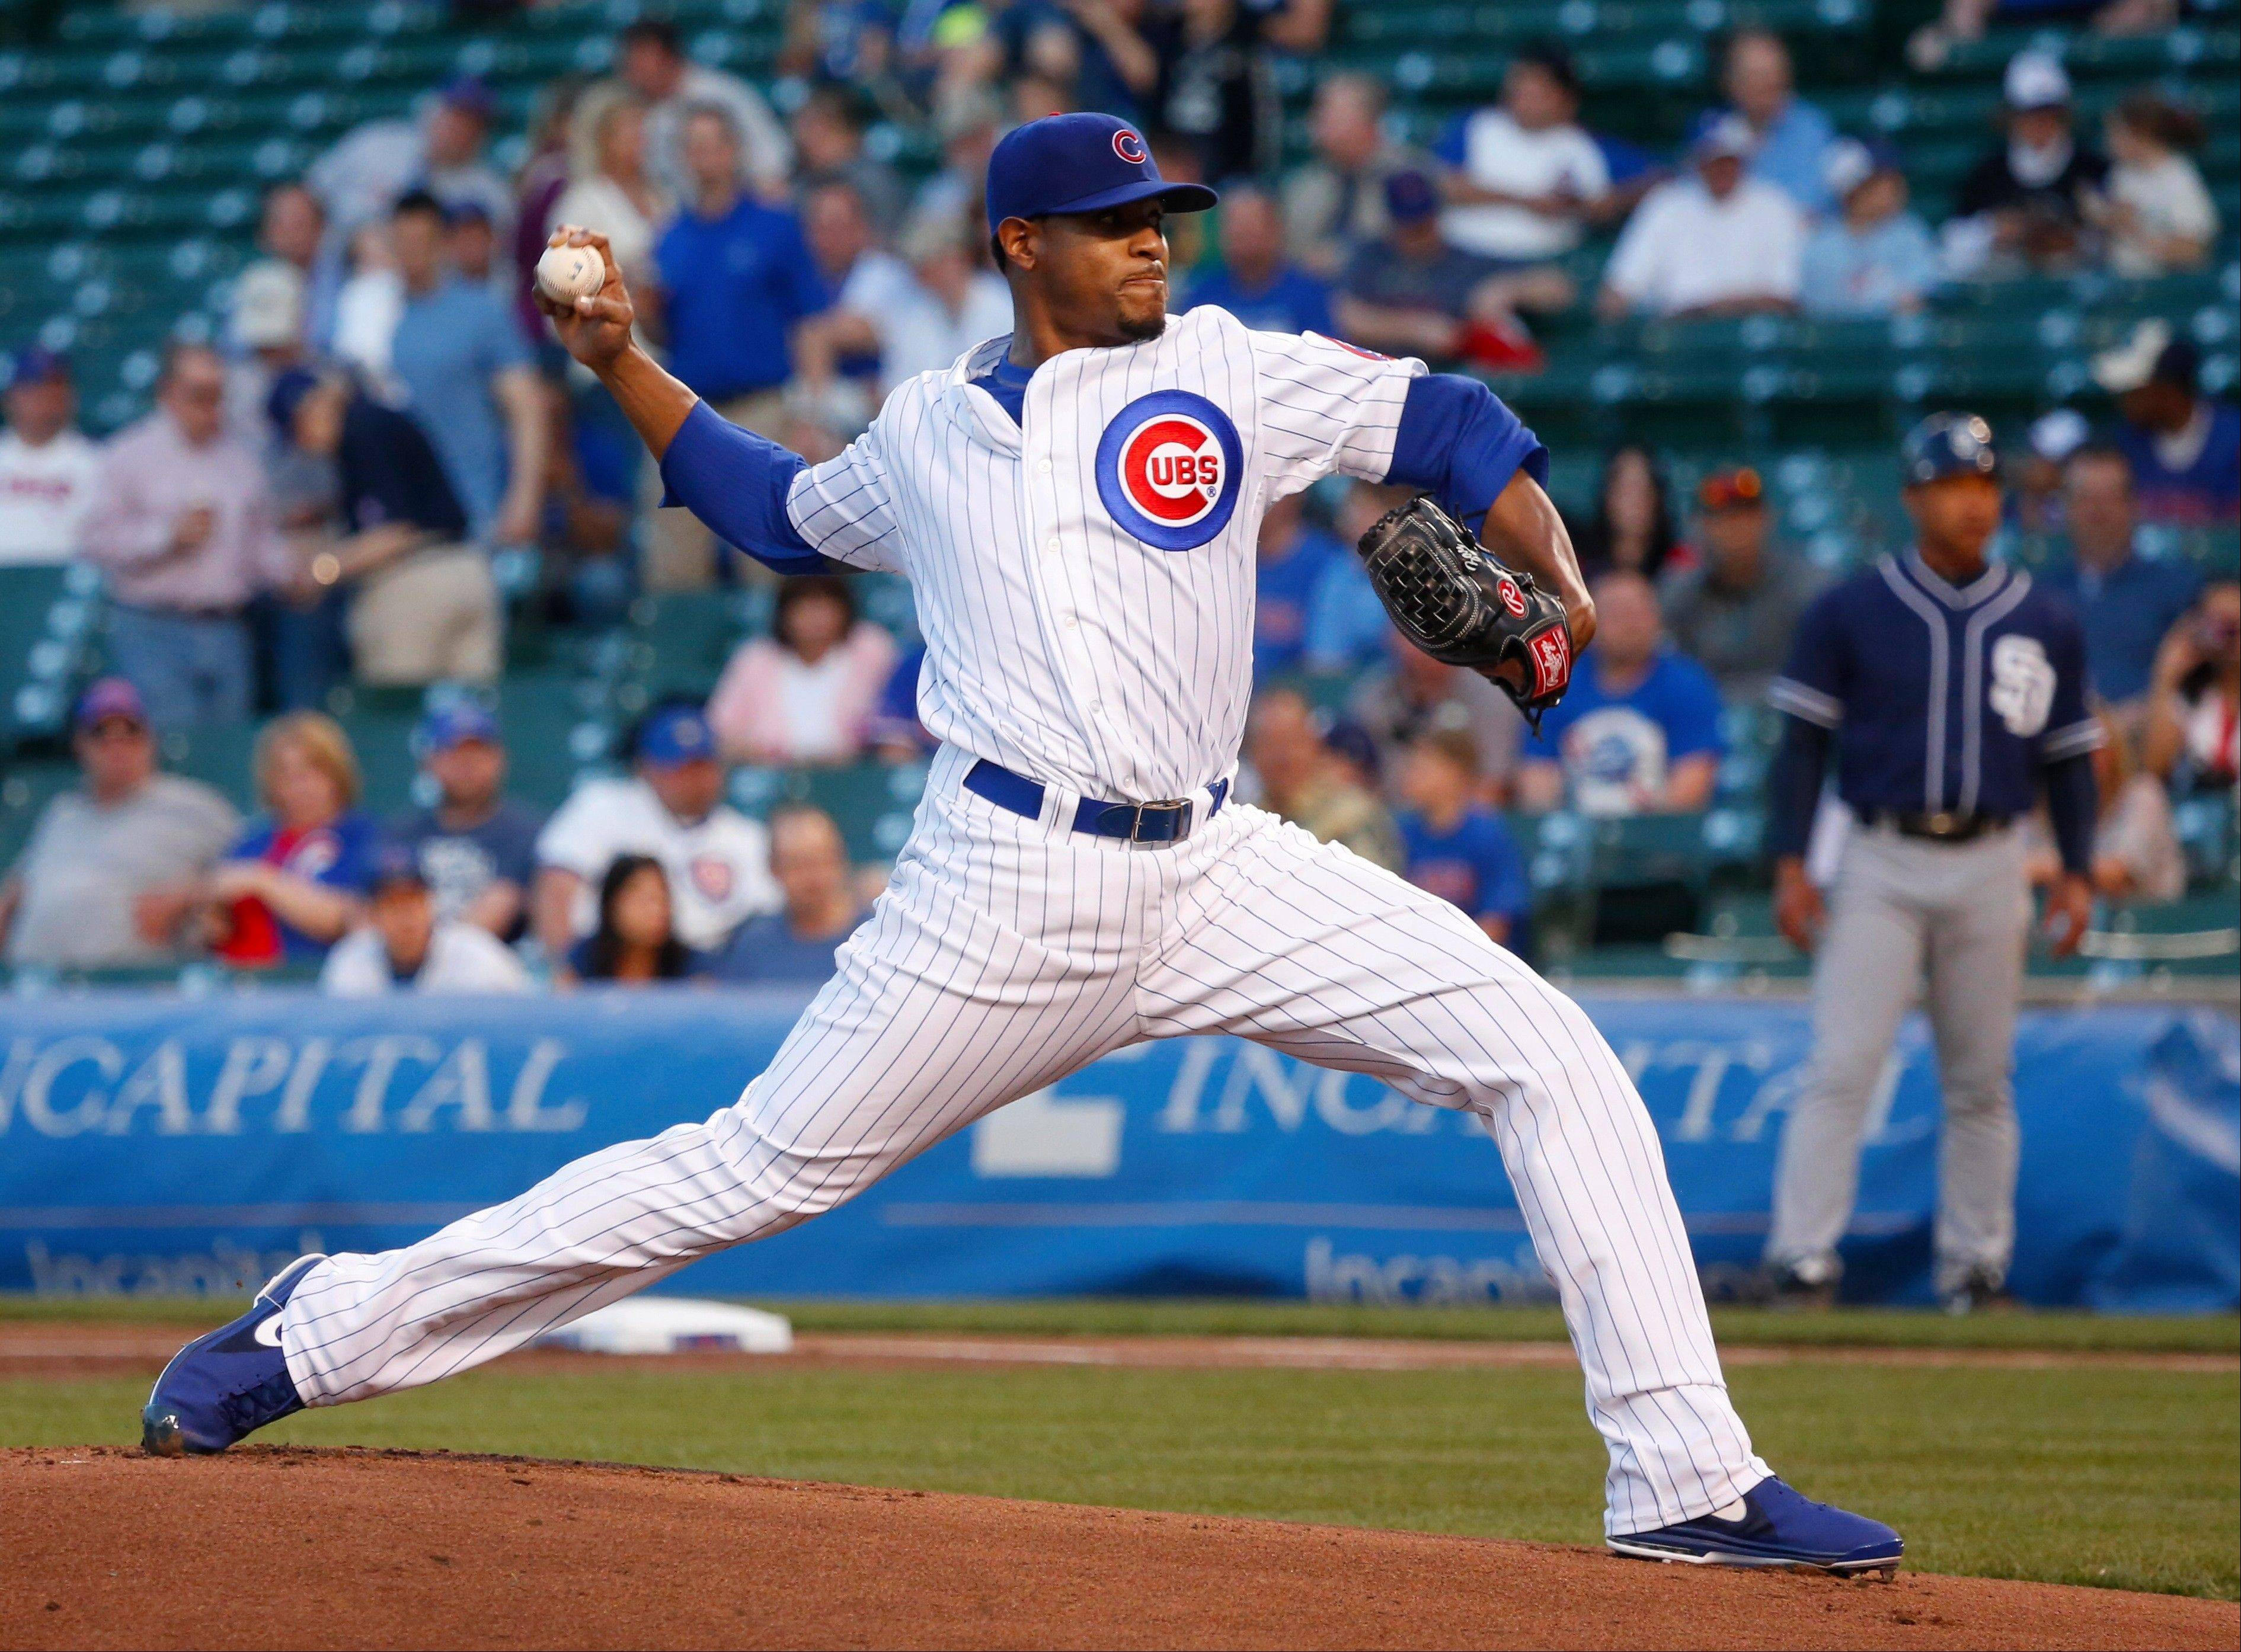 Cubs starting pitcher Edwin Jackson delivers during the first inning Tuesday at home against the San Diego Padres. He lasted only 4 2-3 innings.